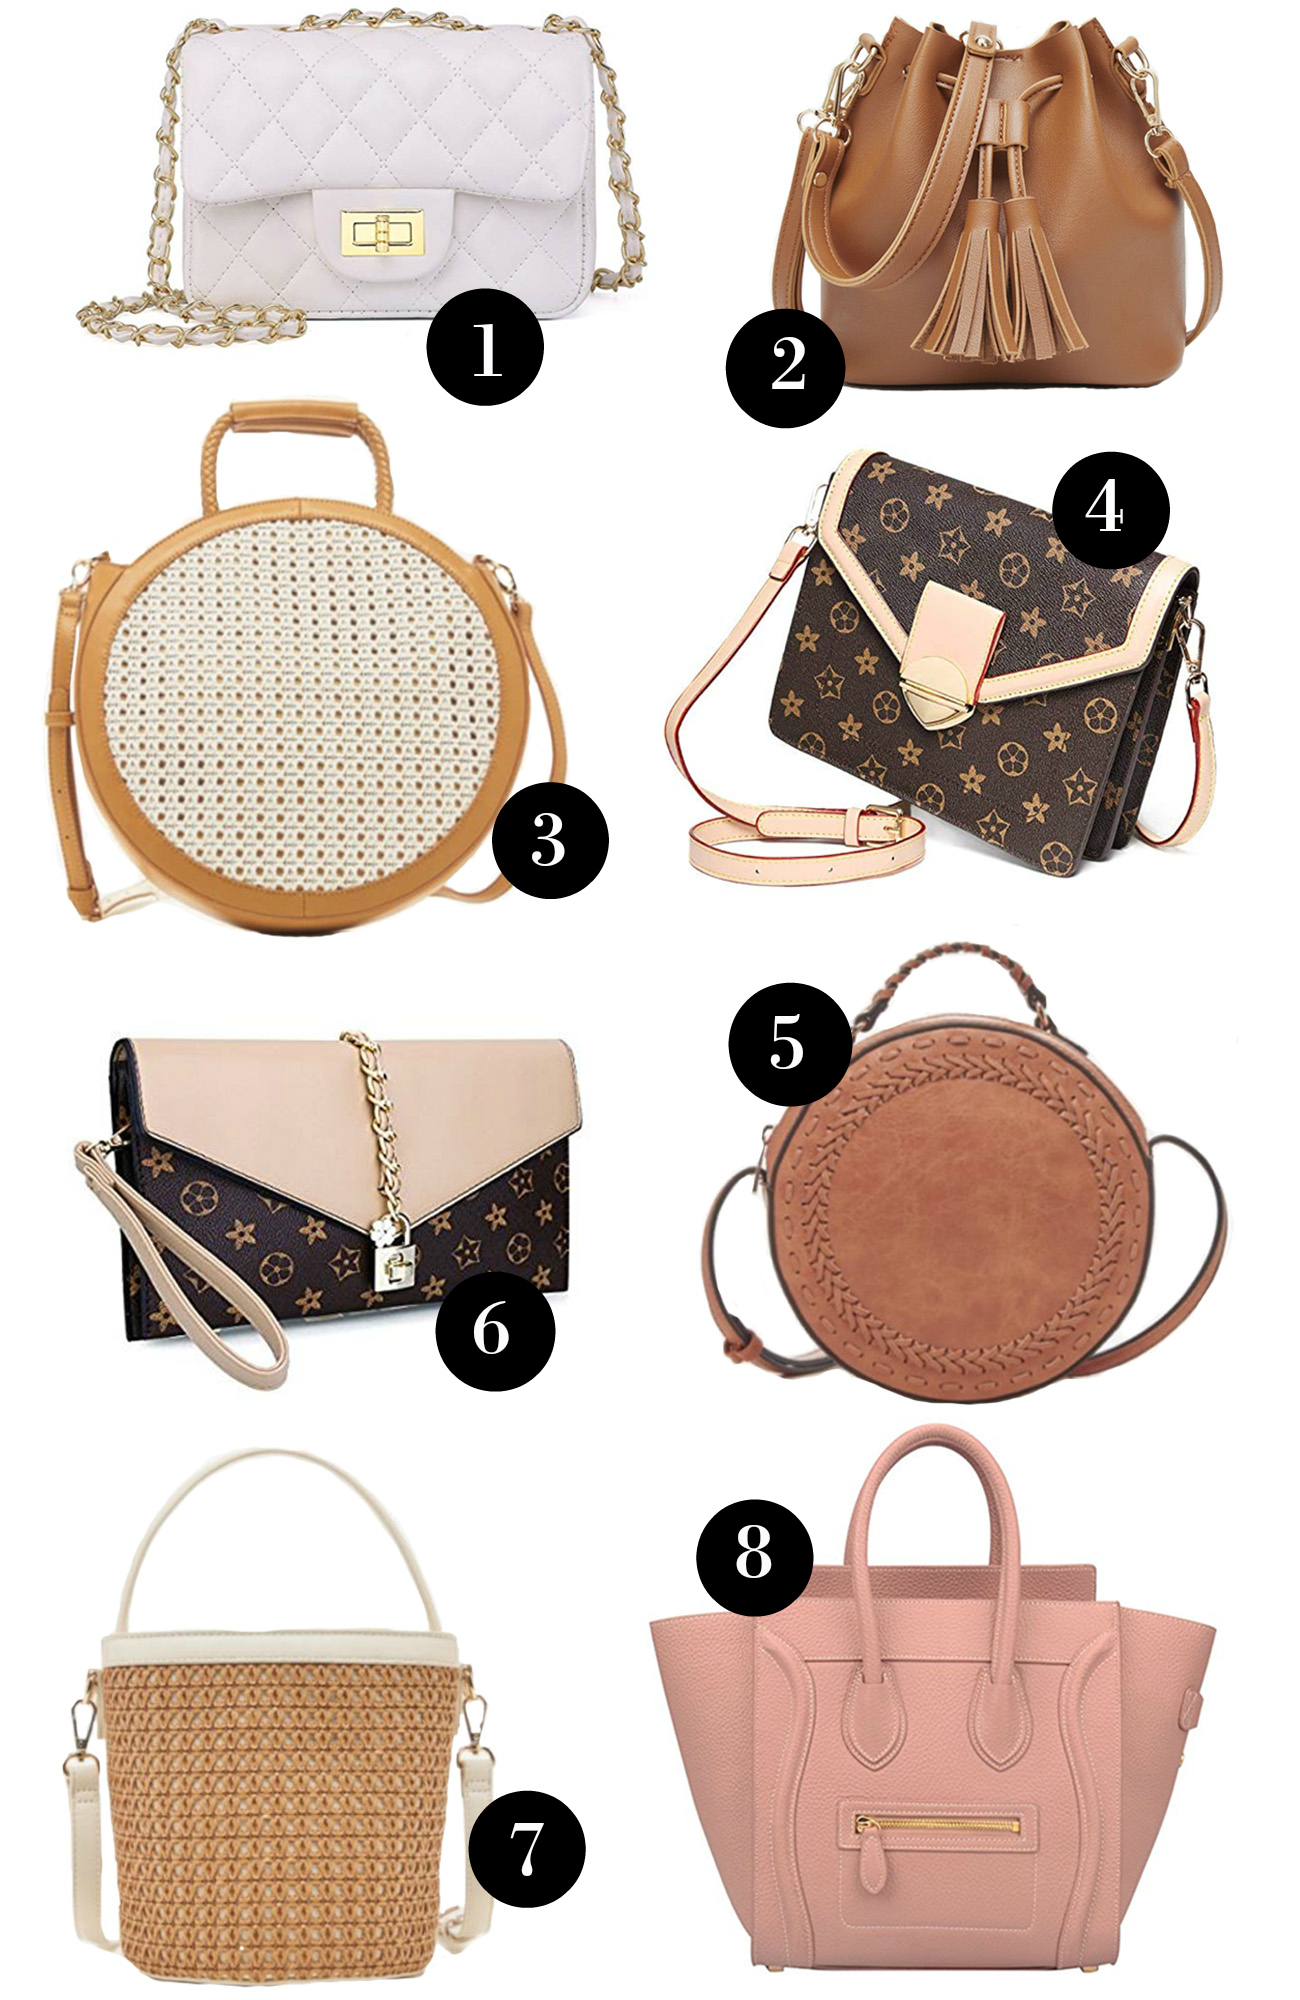 7891c76a67c 16 Designer Bag Dupes For Your Spring Wardrobe - Mash Elle